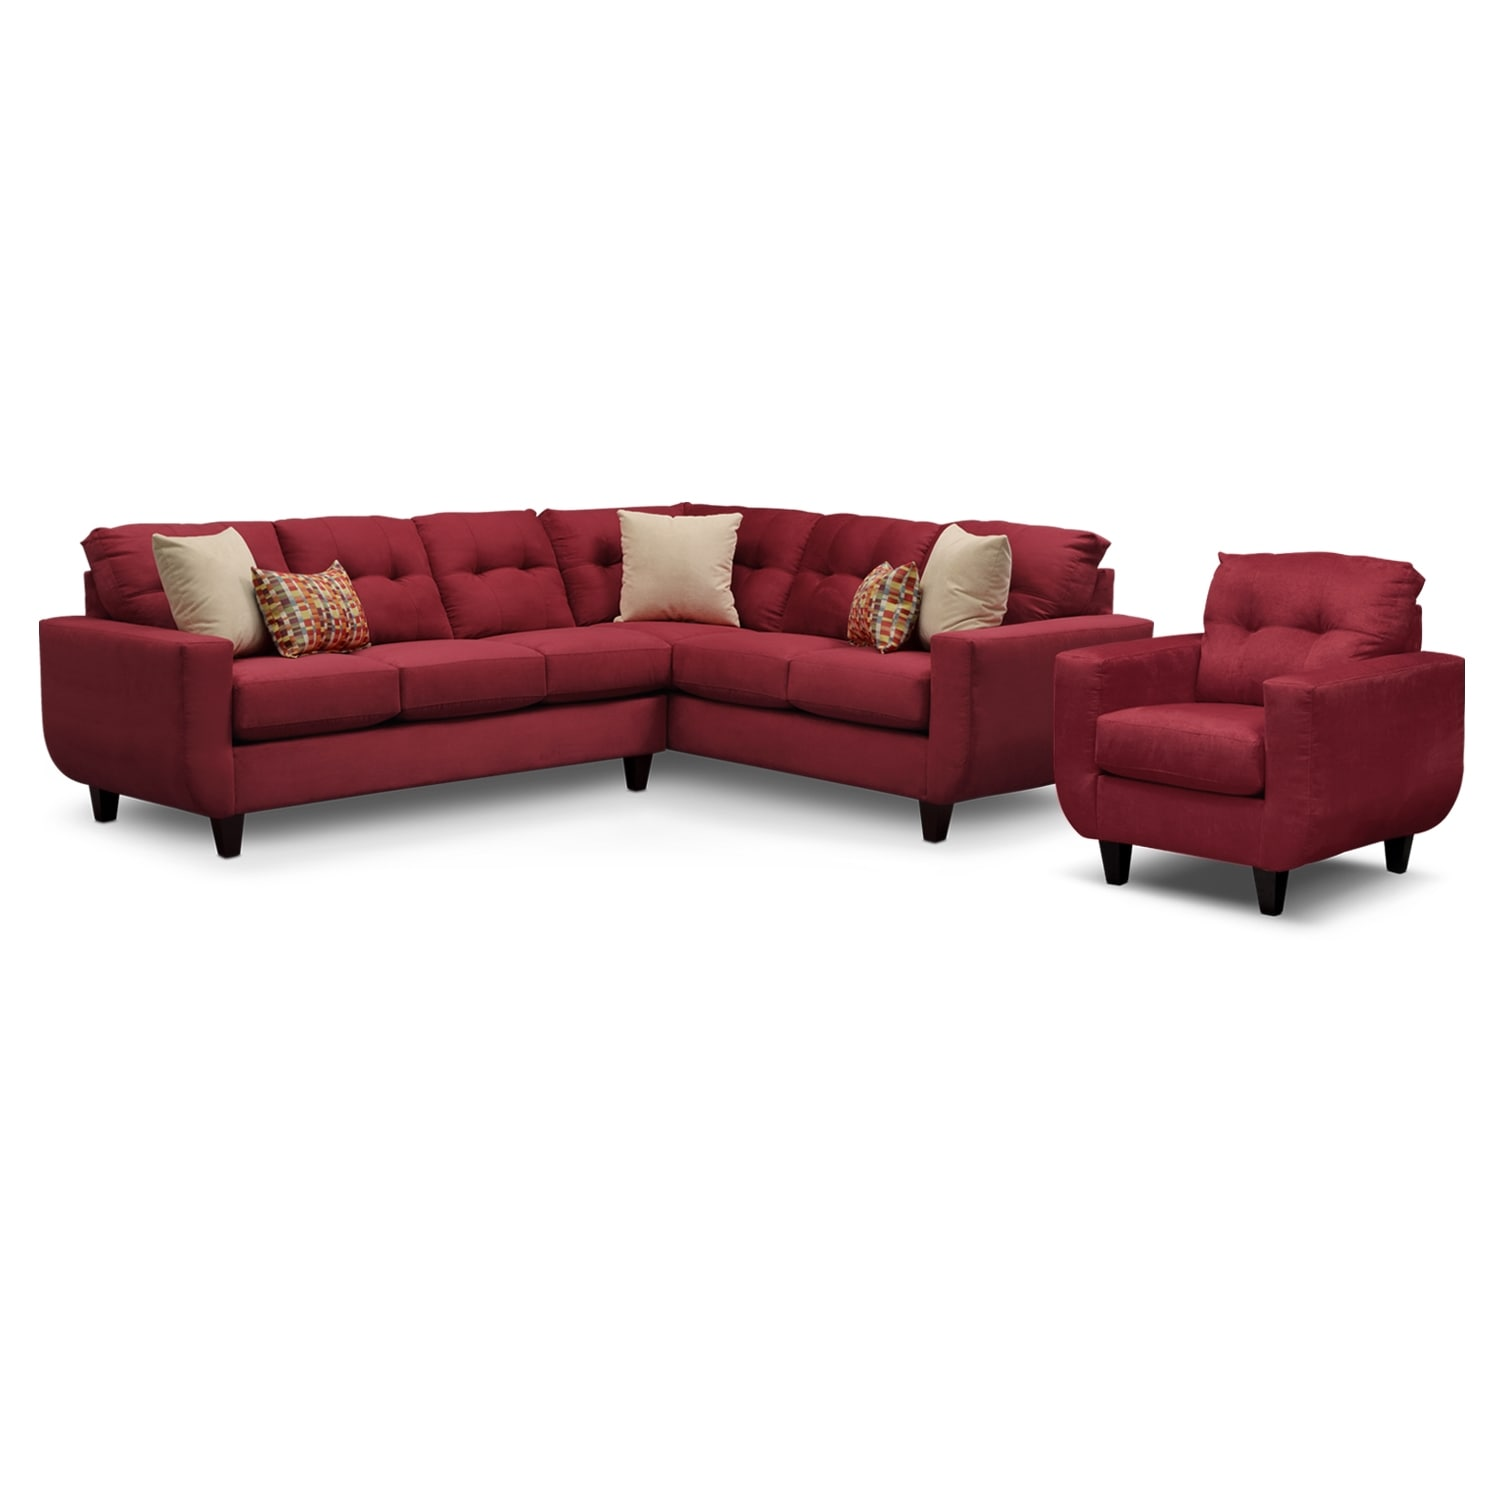 [West Village Red II 2 Pc. Sectional and Chair]